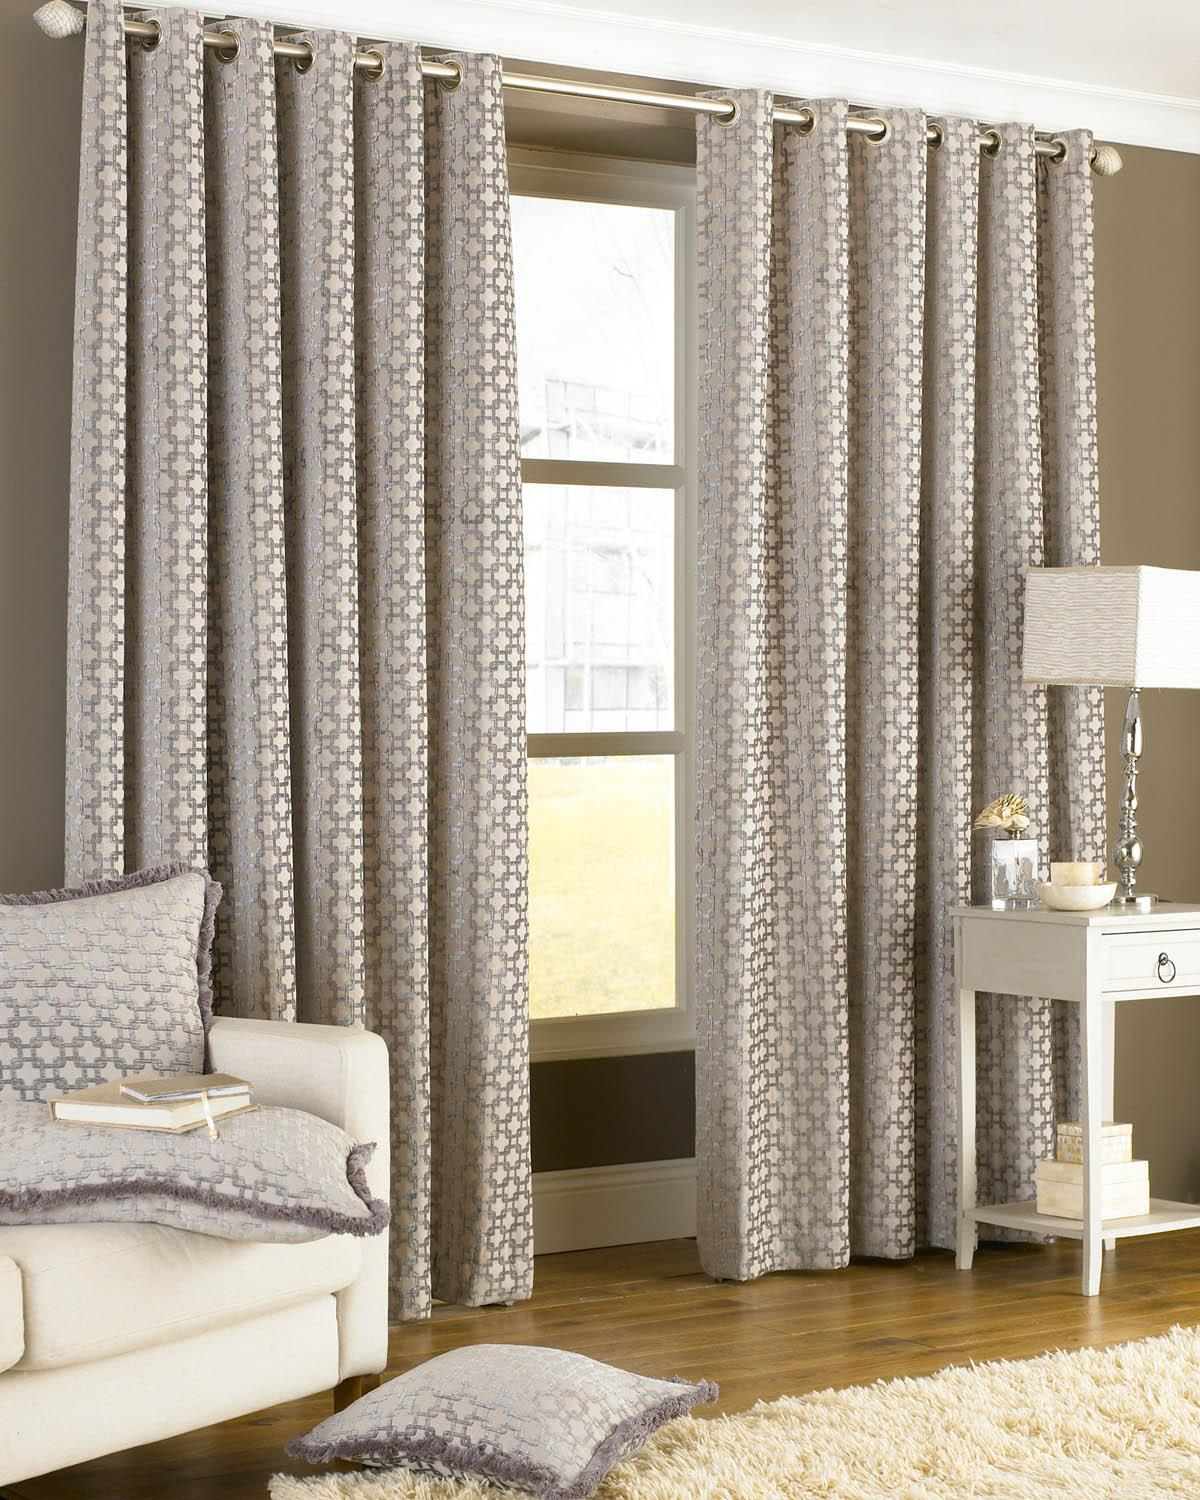 Stockists of Silver Belmont Eyelet Lined Curtains